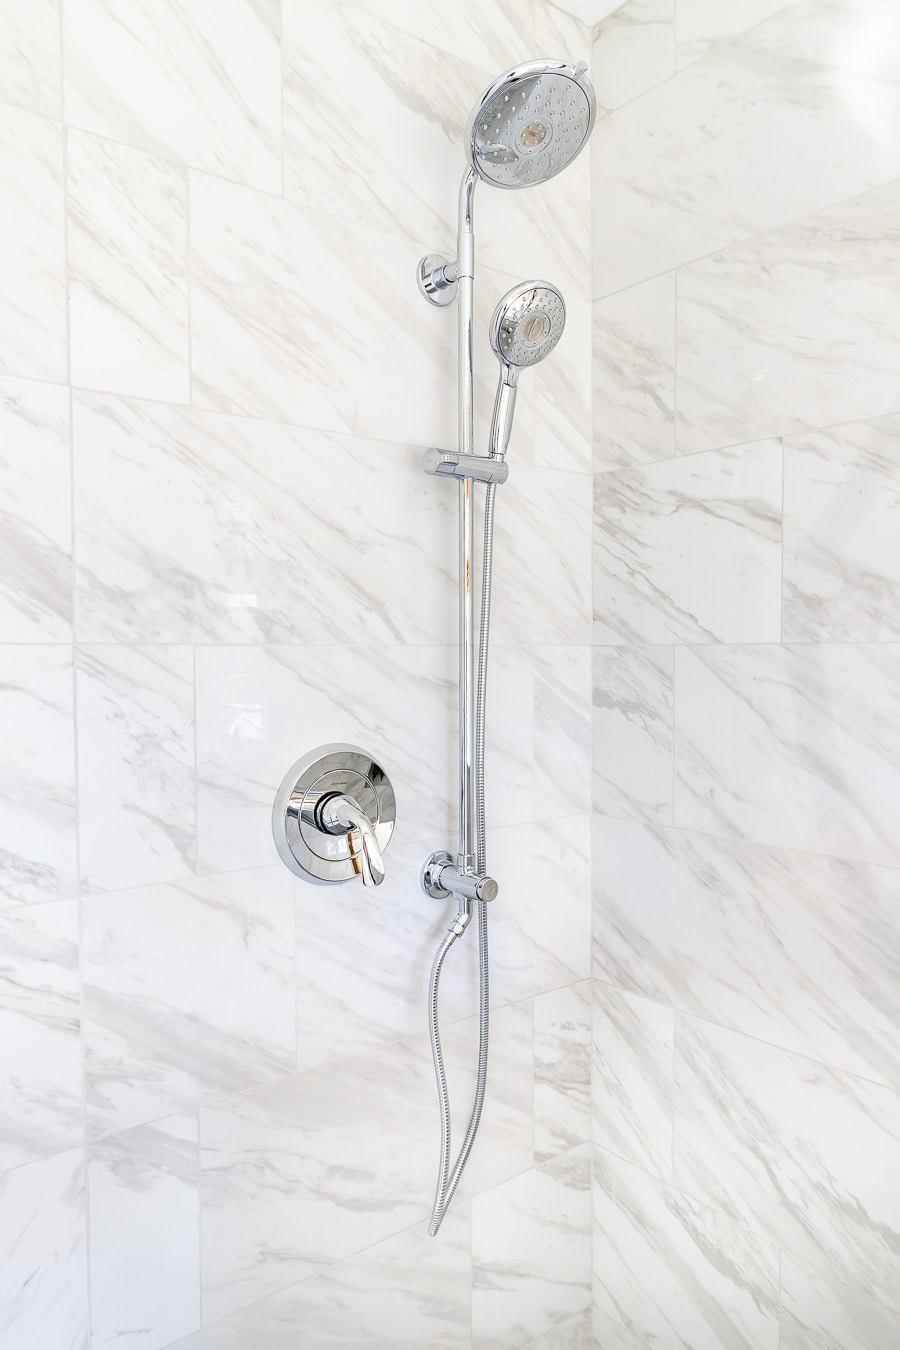 Large format tiles on shower wall with shower system